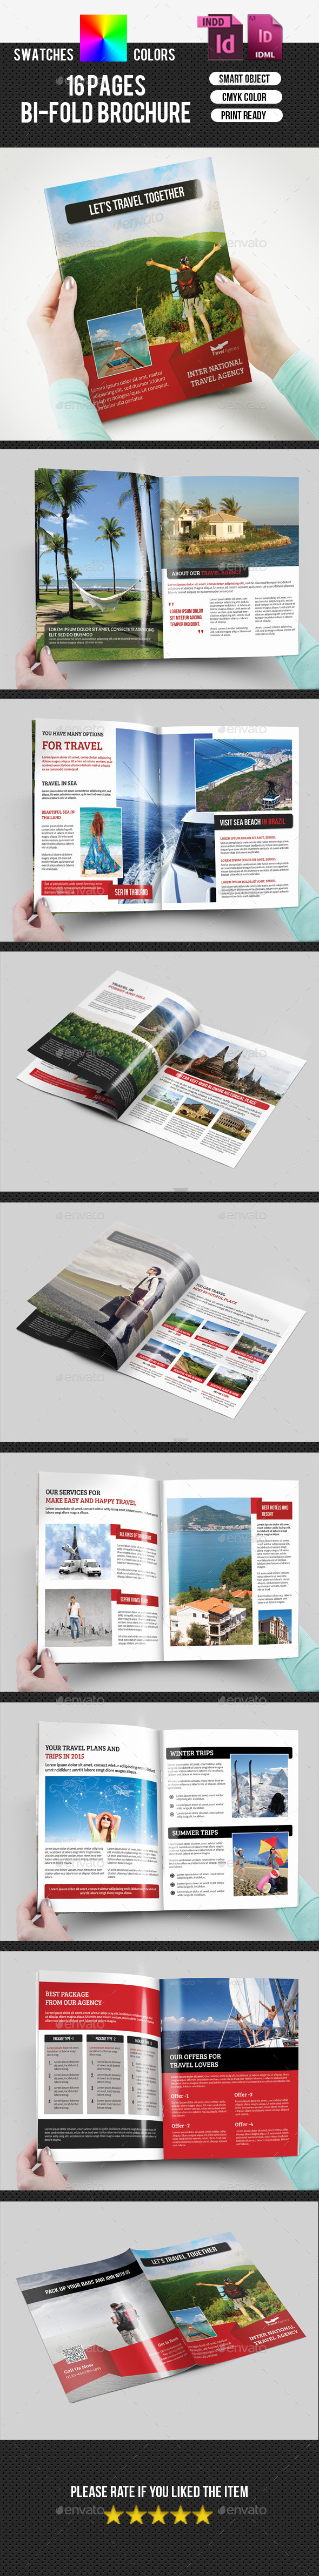 GraphicRiver Travel Agency Bifold Brochure-V166 9635710